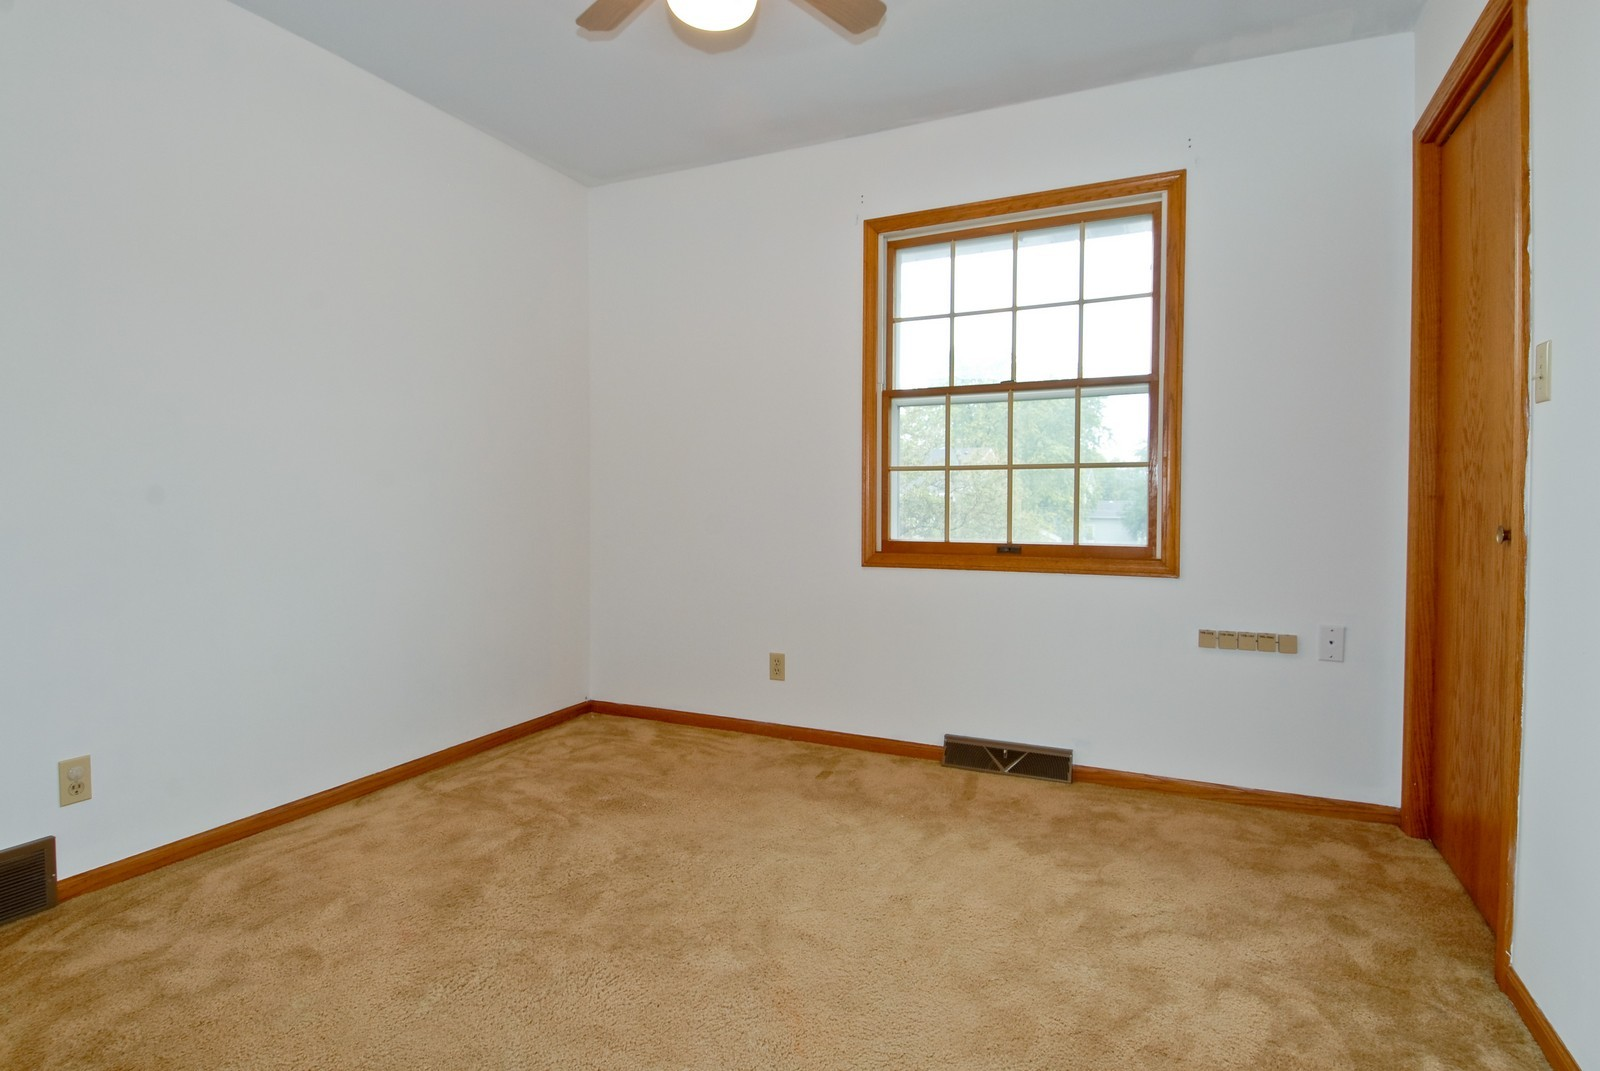 Real Estate Photography - 210 Pardridge Pl, Dekalb, IL, 60115 - 3rd Bedroom